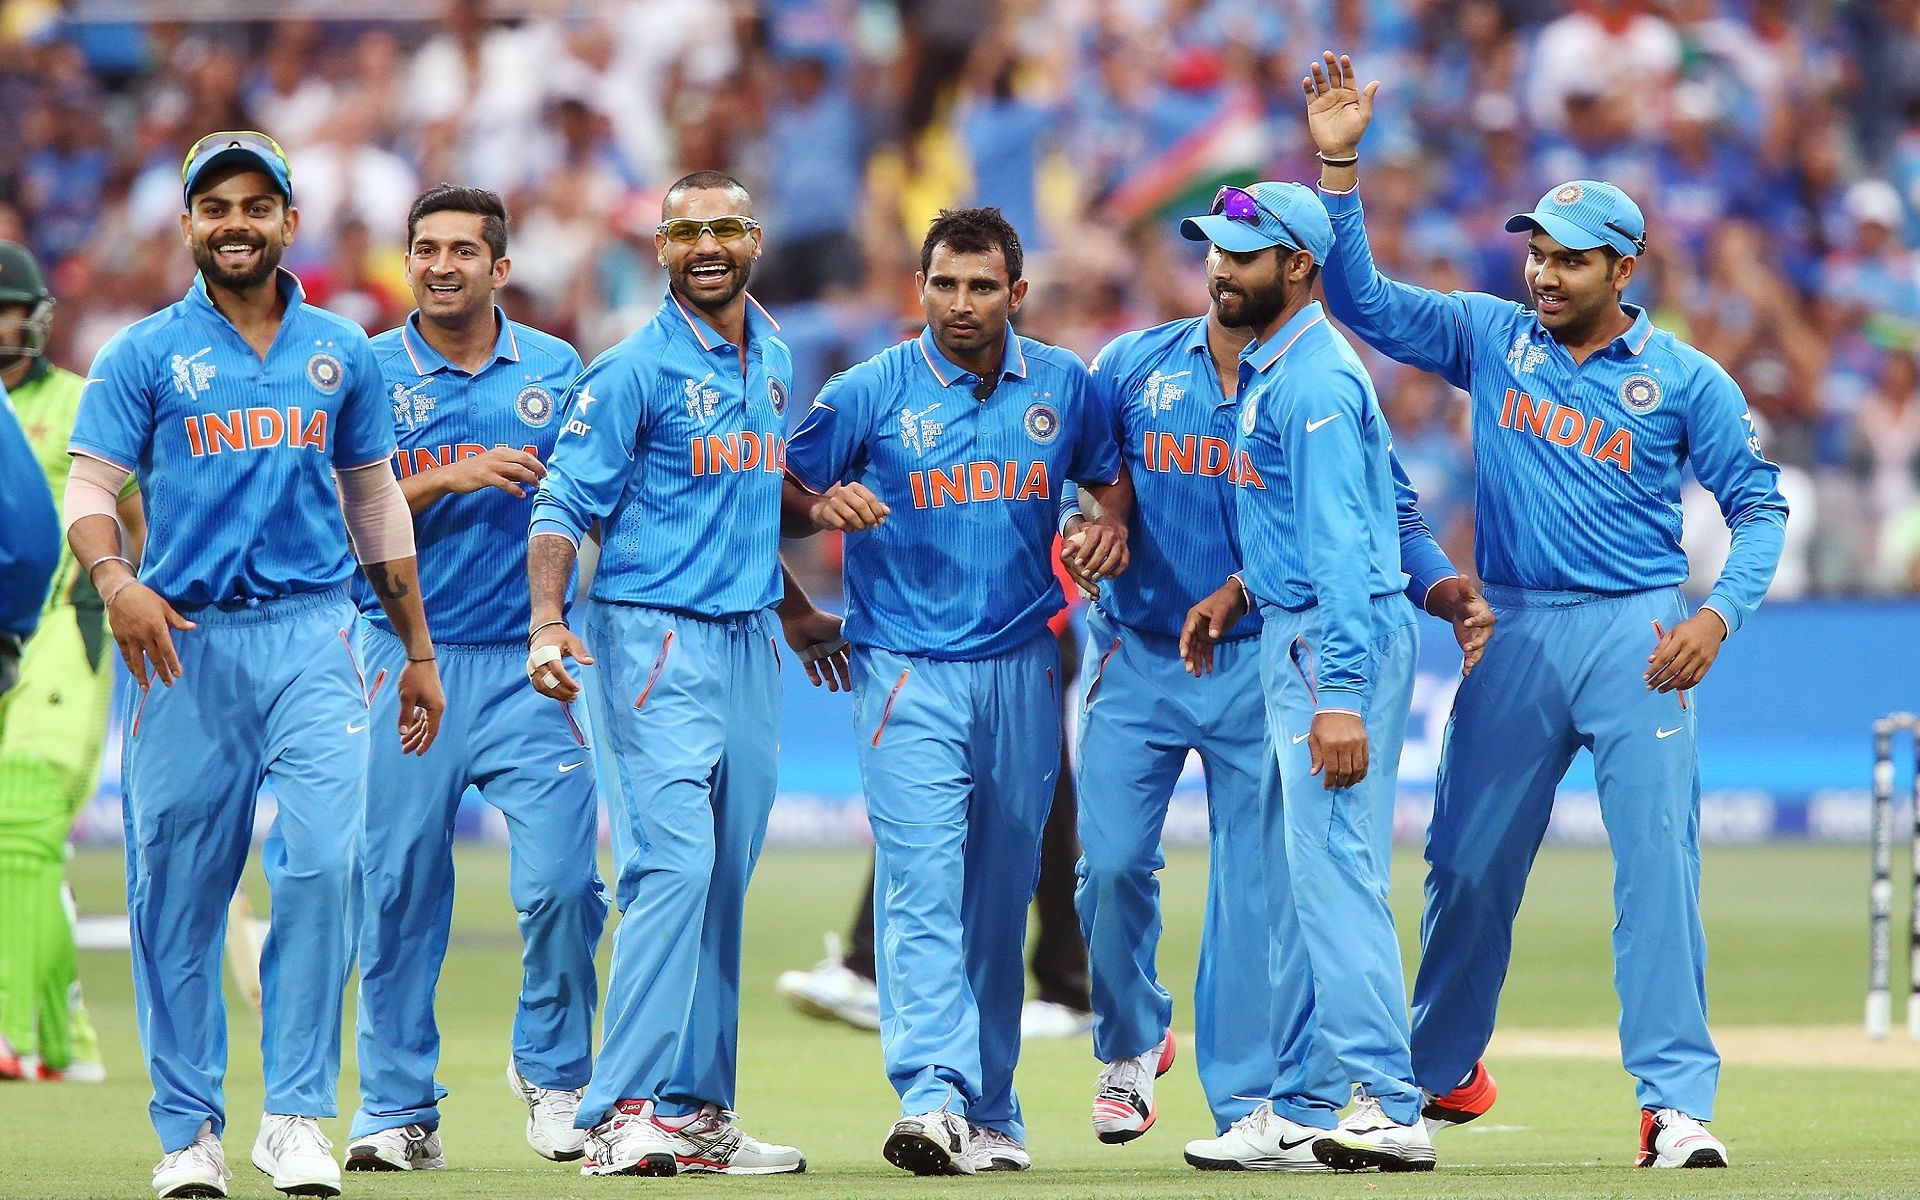 Photos Environment Friendly Jerseys For Team India: Happy Indian Cricket Team On The Ground Nice Wallpapers